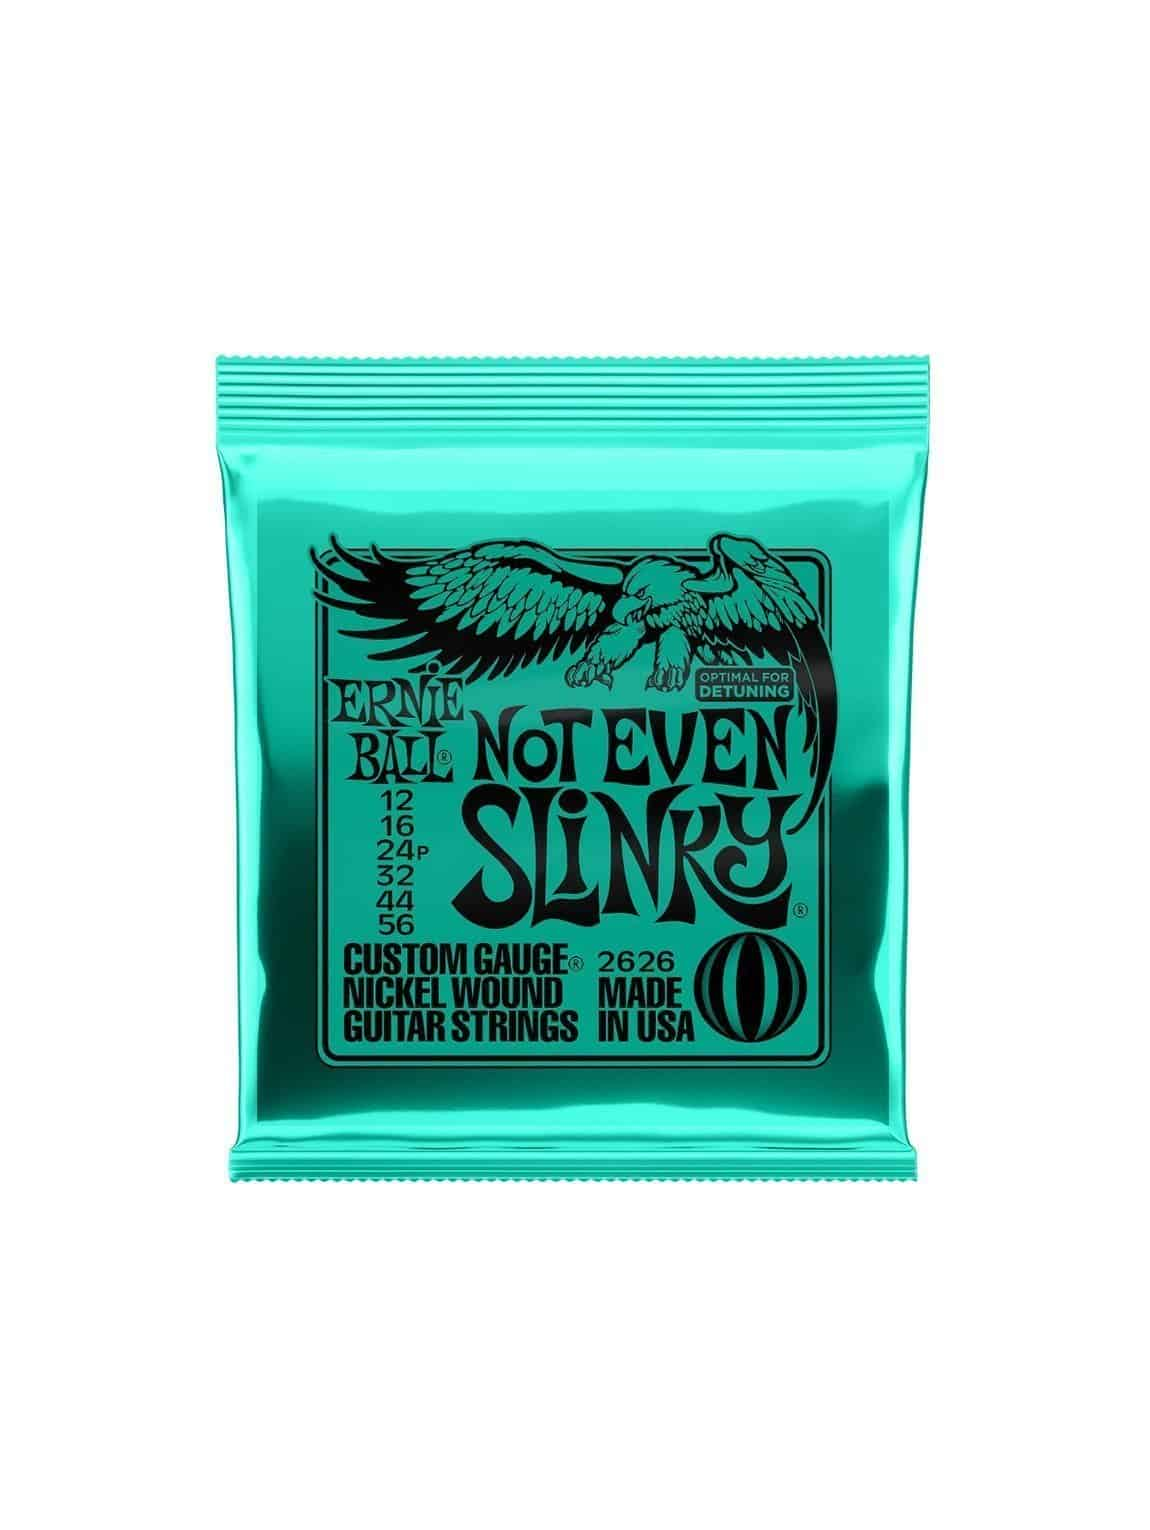 Ernie Ball -2626- Not Even Slinky- Electric 12-56 Gauge